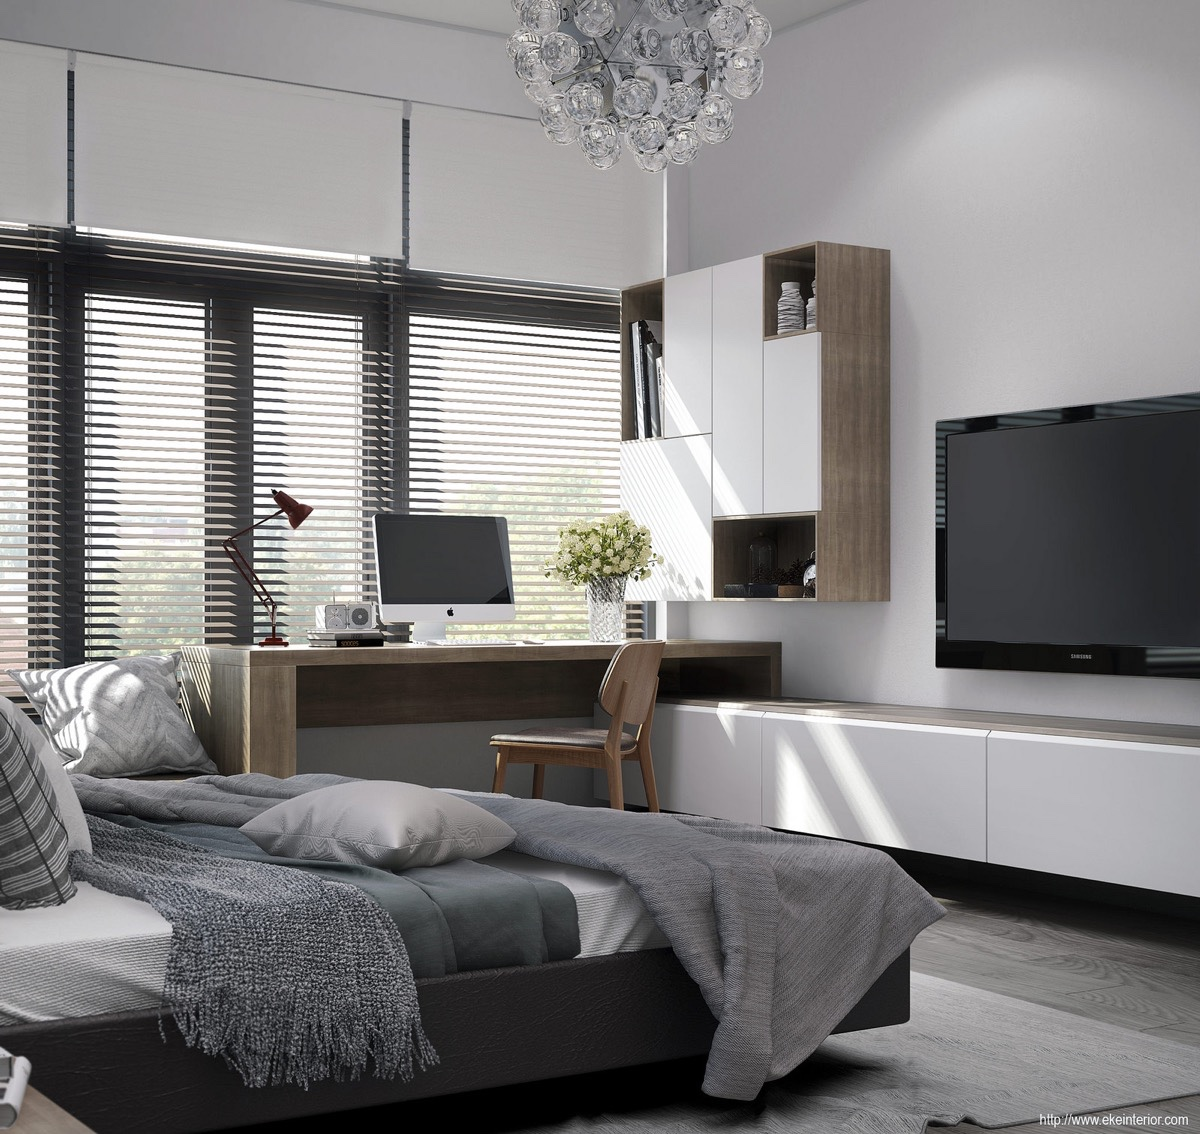 Lovely Bedrooms With Fabulous Furniture And Layouts. Lovely Bedrooms With Fabulous Furniture And Layouts   PushUP24